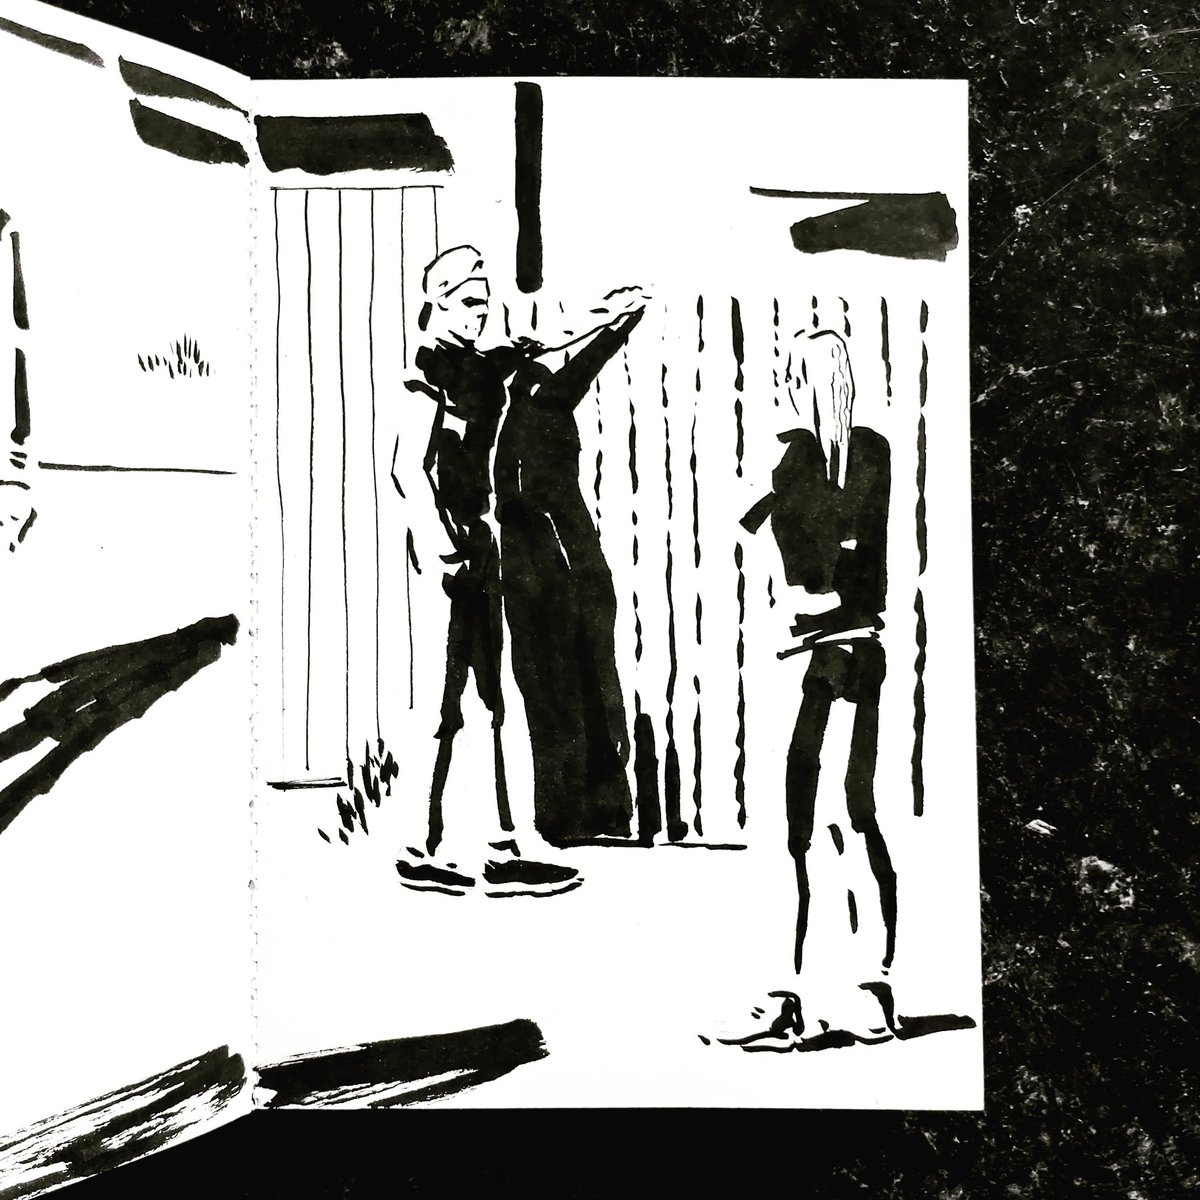 From the Inside 2 Day 218 (334 total) #isolation study Kitchen window Passerby No 245/246 #isolationlife #stayathome #lockdown #lockdown2uk #sketchbook #sketch #drawing #draw #doodle #ink #lineart #lifedrawing #figuredrawing #walk #artoftheday #art #artwork #artist #illustration https://t.co/MFEcwT31sF